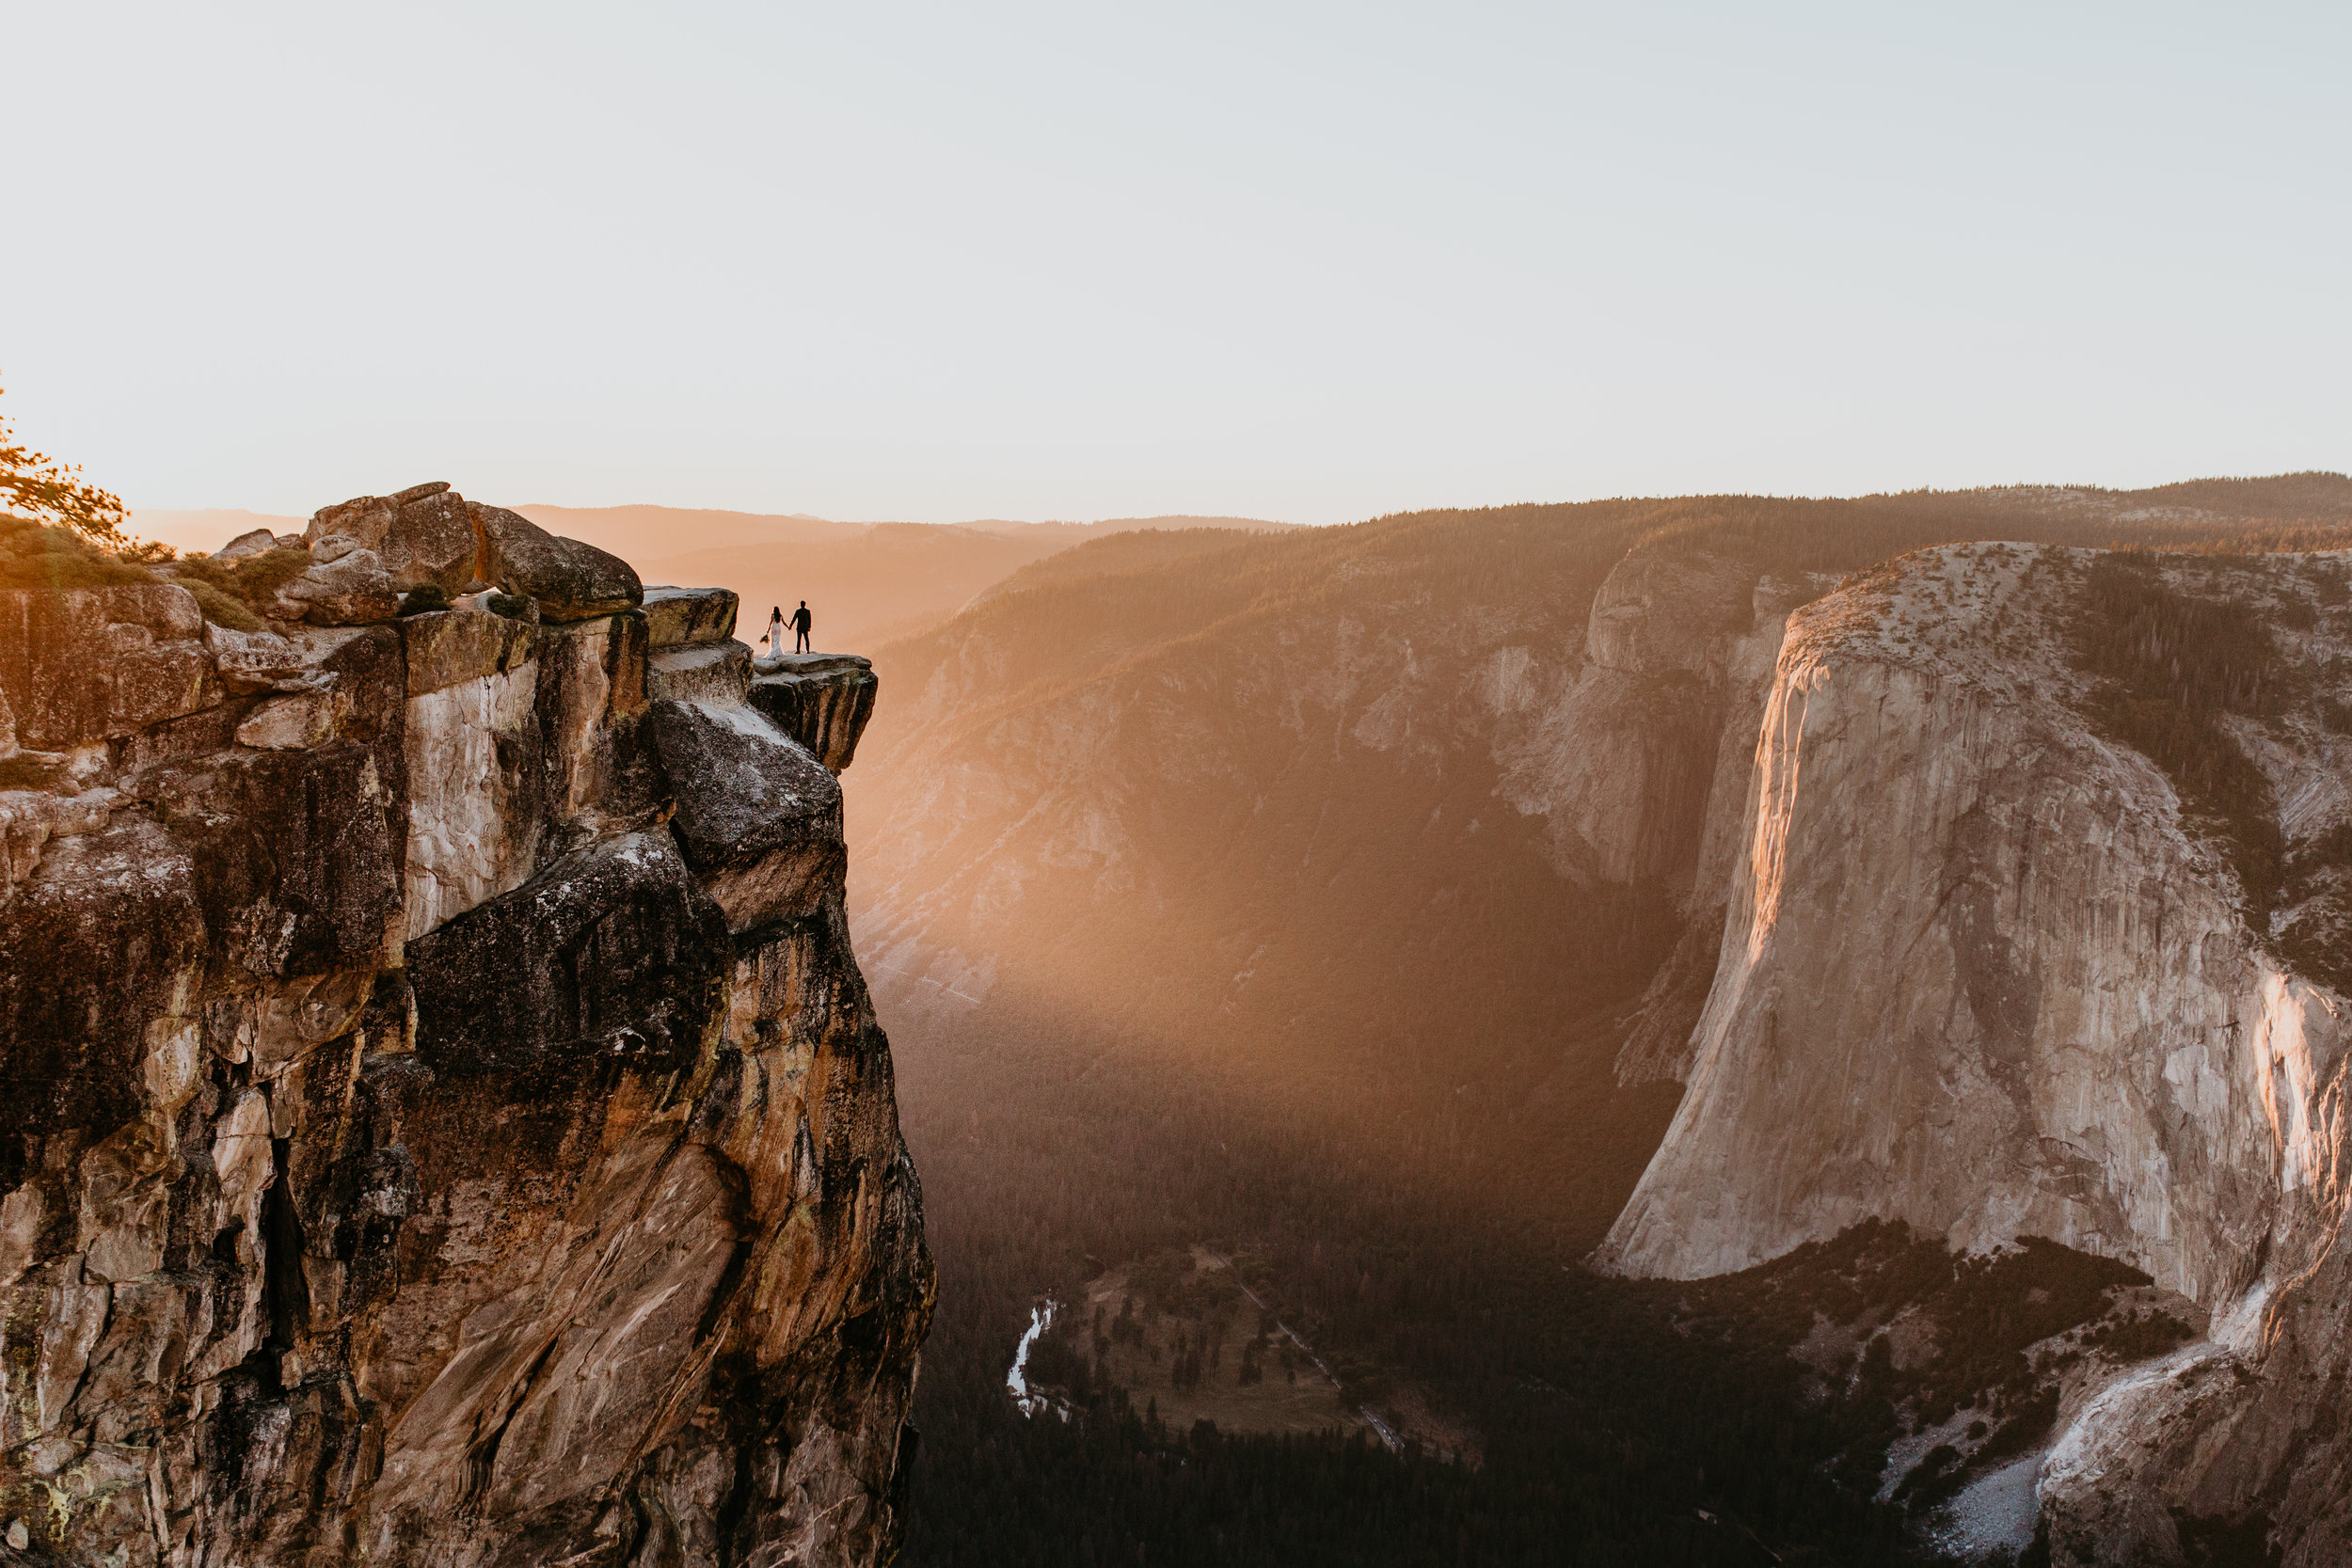 nicole-daacke-photography-intimate-elopement-wedding-yosemite-national-park-california-taft-point-sunset-photos-yosemite-valley-tunnel-view-first-look-sunrise-golden-granite-hiking-adventure-wedding-adventurous-elopement-photographer-112.jpg